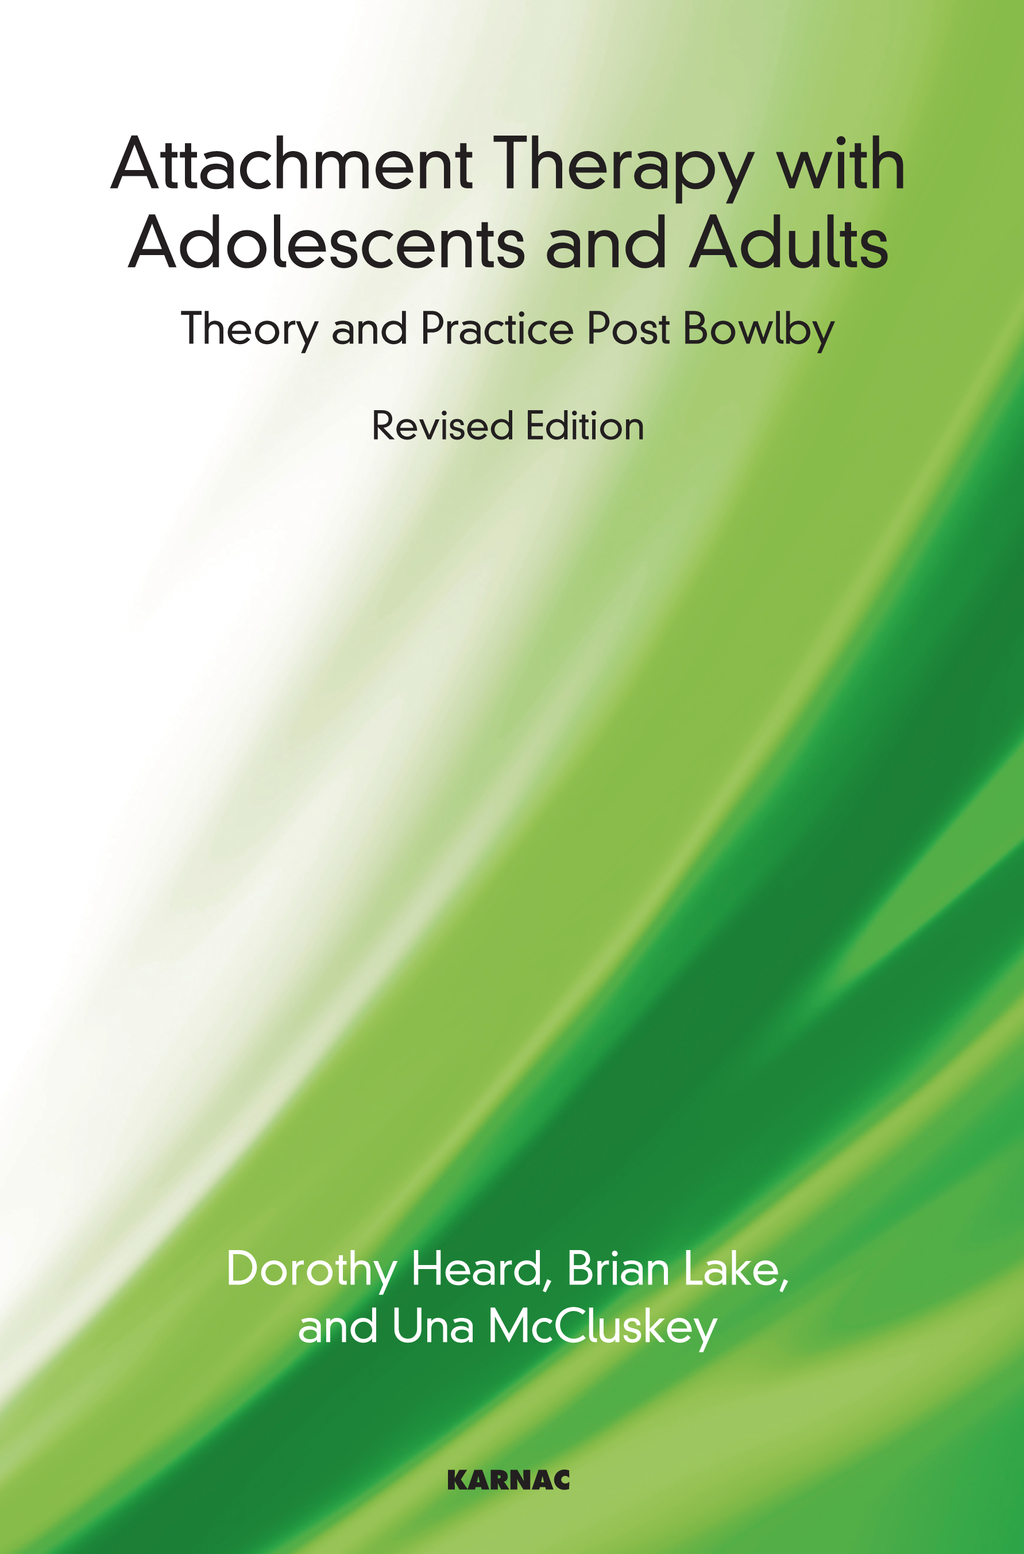 Attachment Therapy with Adolescents and Adults: Theory and Practice Post-Bowlby By: Brian Lake,Dorothy Heard,Una McCluskey